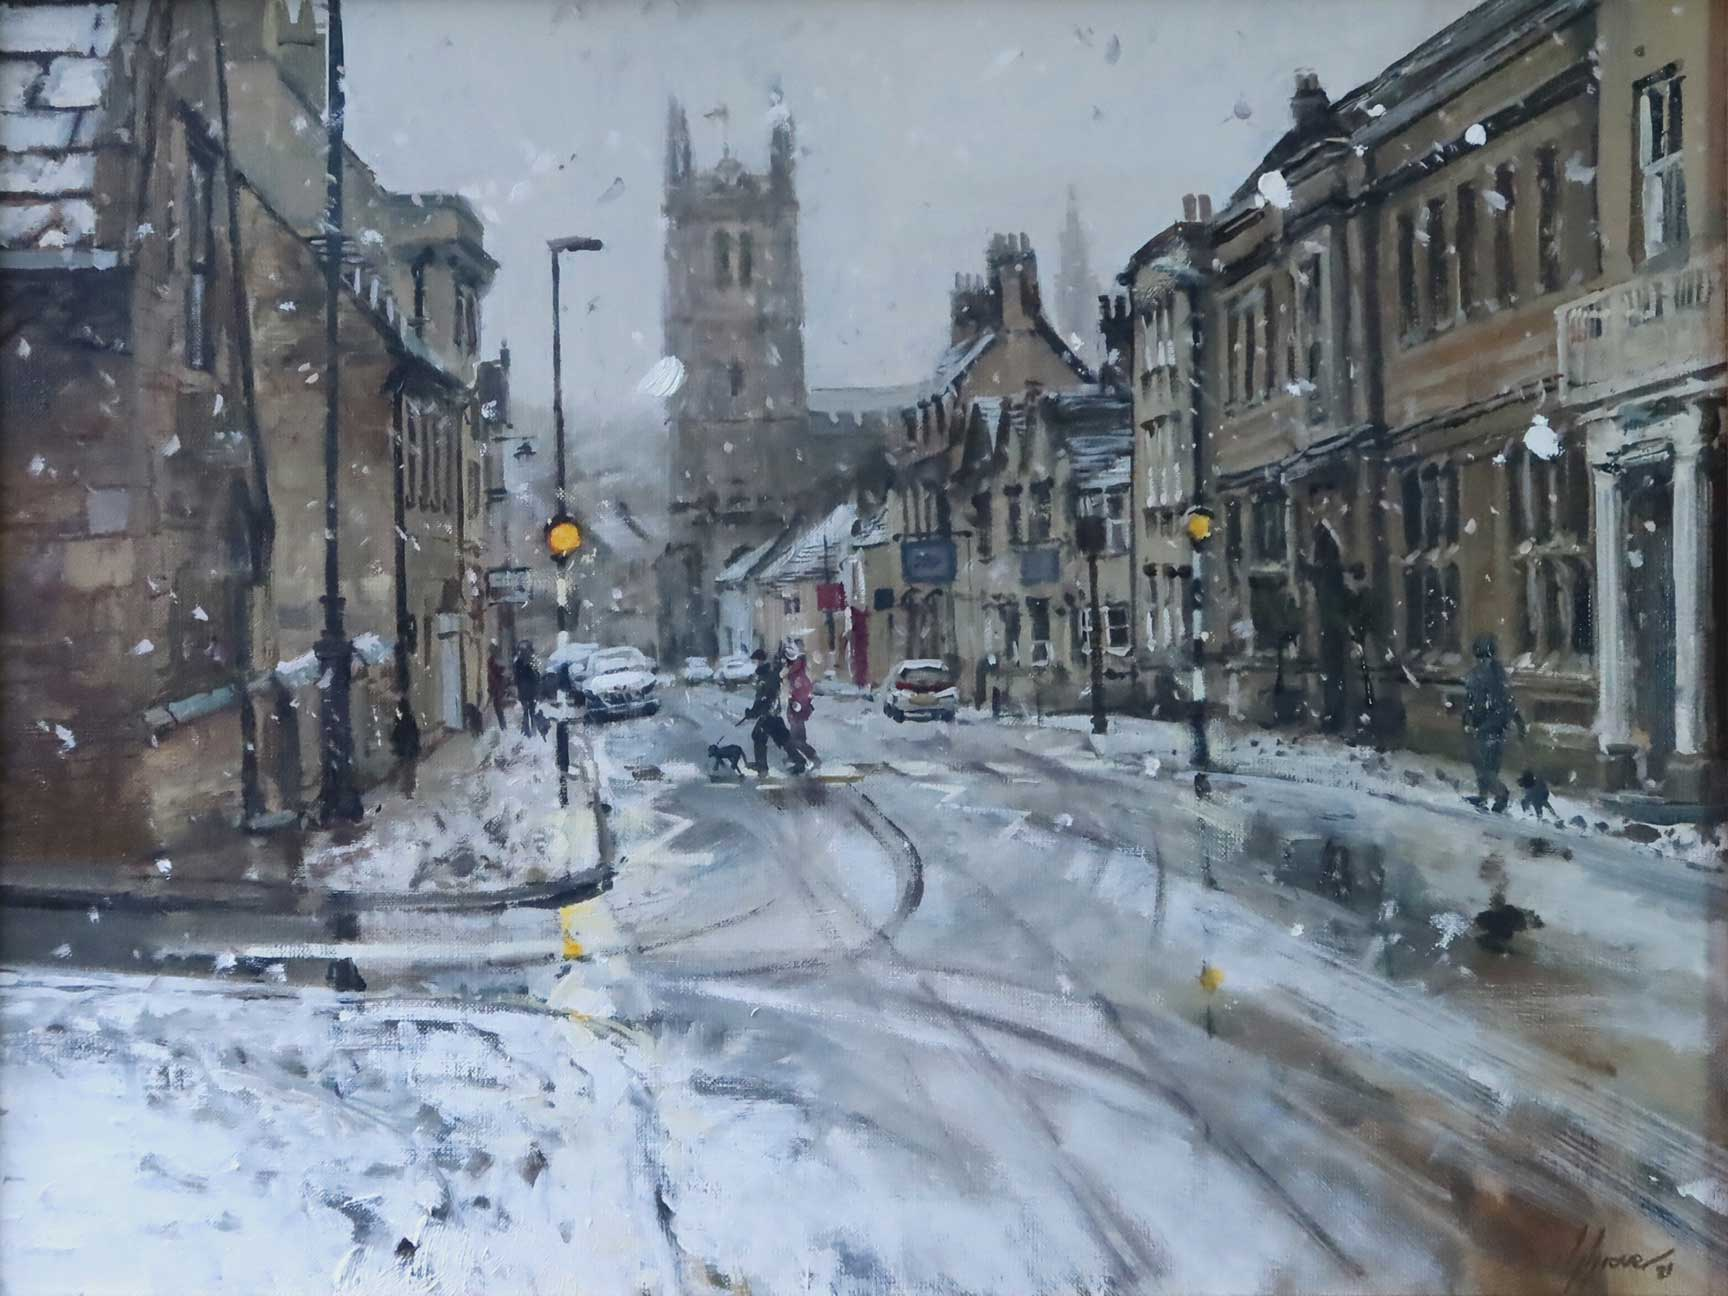 Winter Exhibition 2020 is the first virtual exhibition by local Stamford Artist Nick Grove depicting local seasonal landscapes.